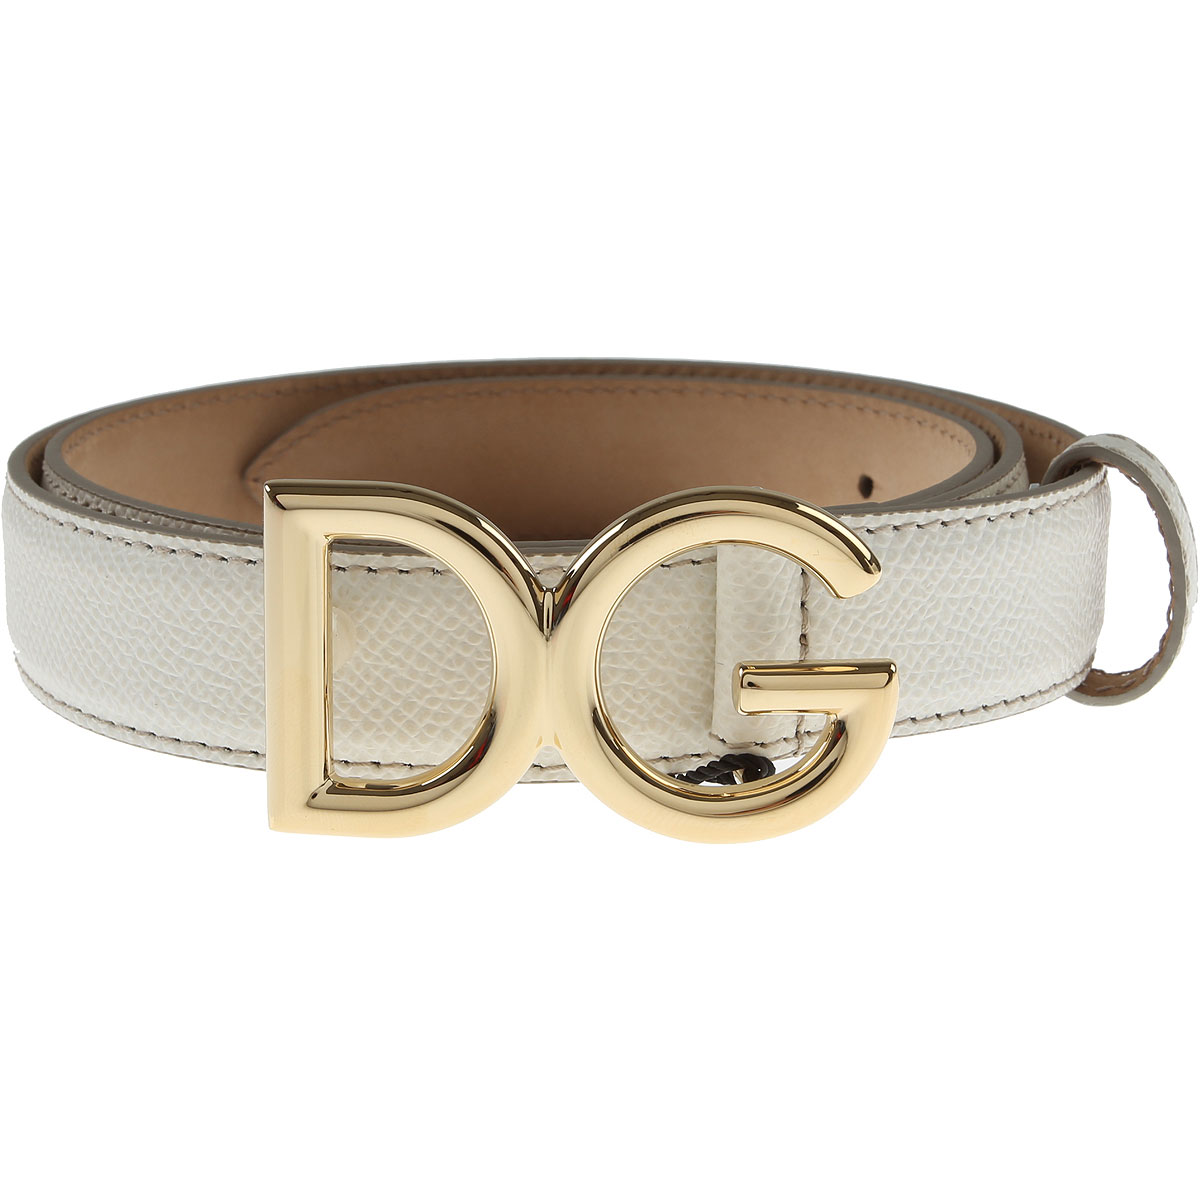 Dolce & Gabbana Womens Belts, White, Leather, 2017, 30 inches - 75 cm 34 inches - 85 cm